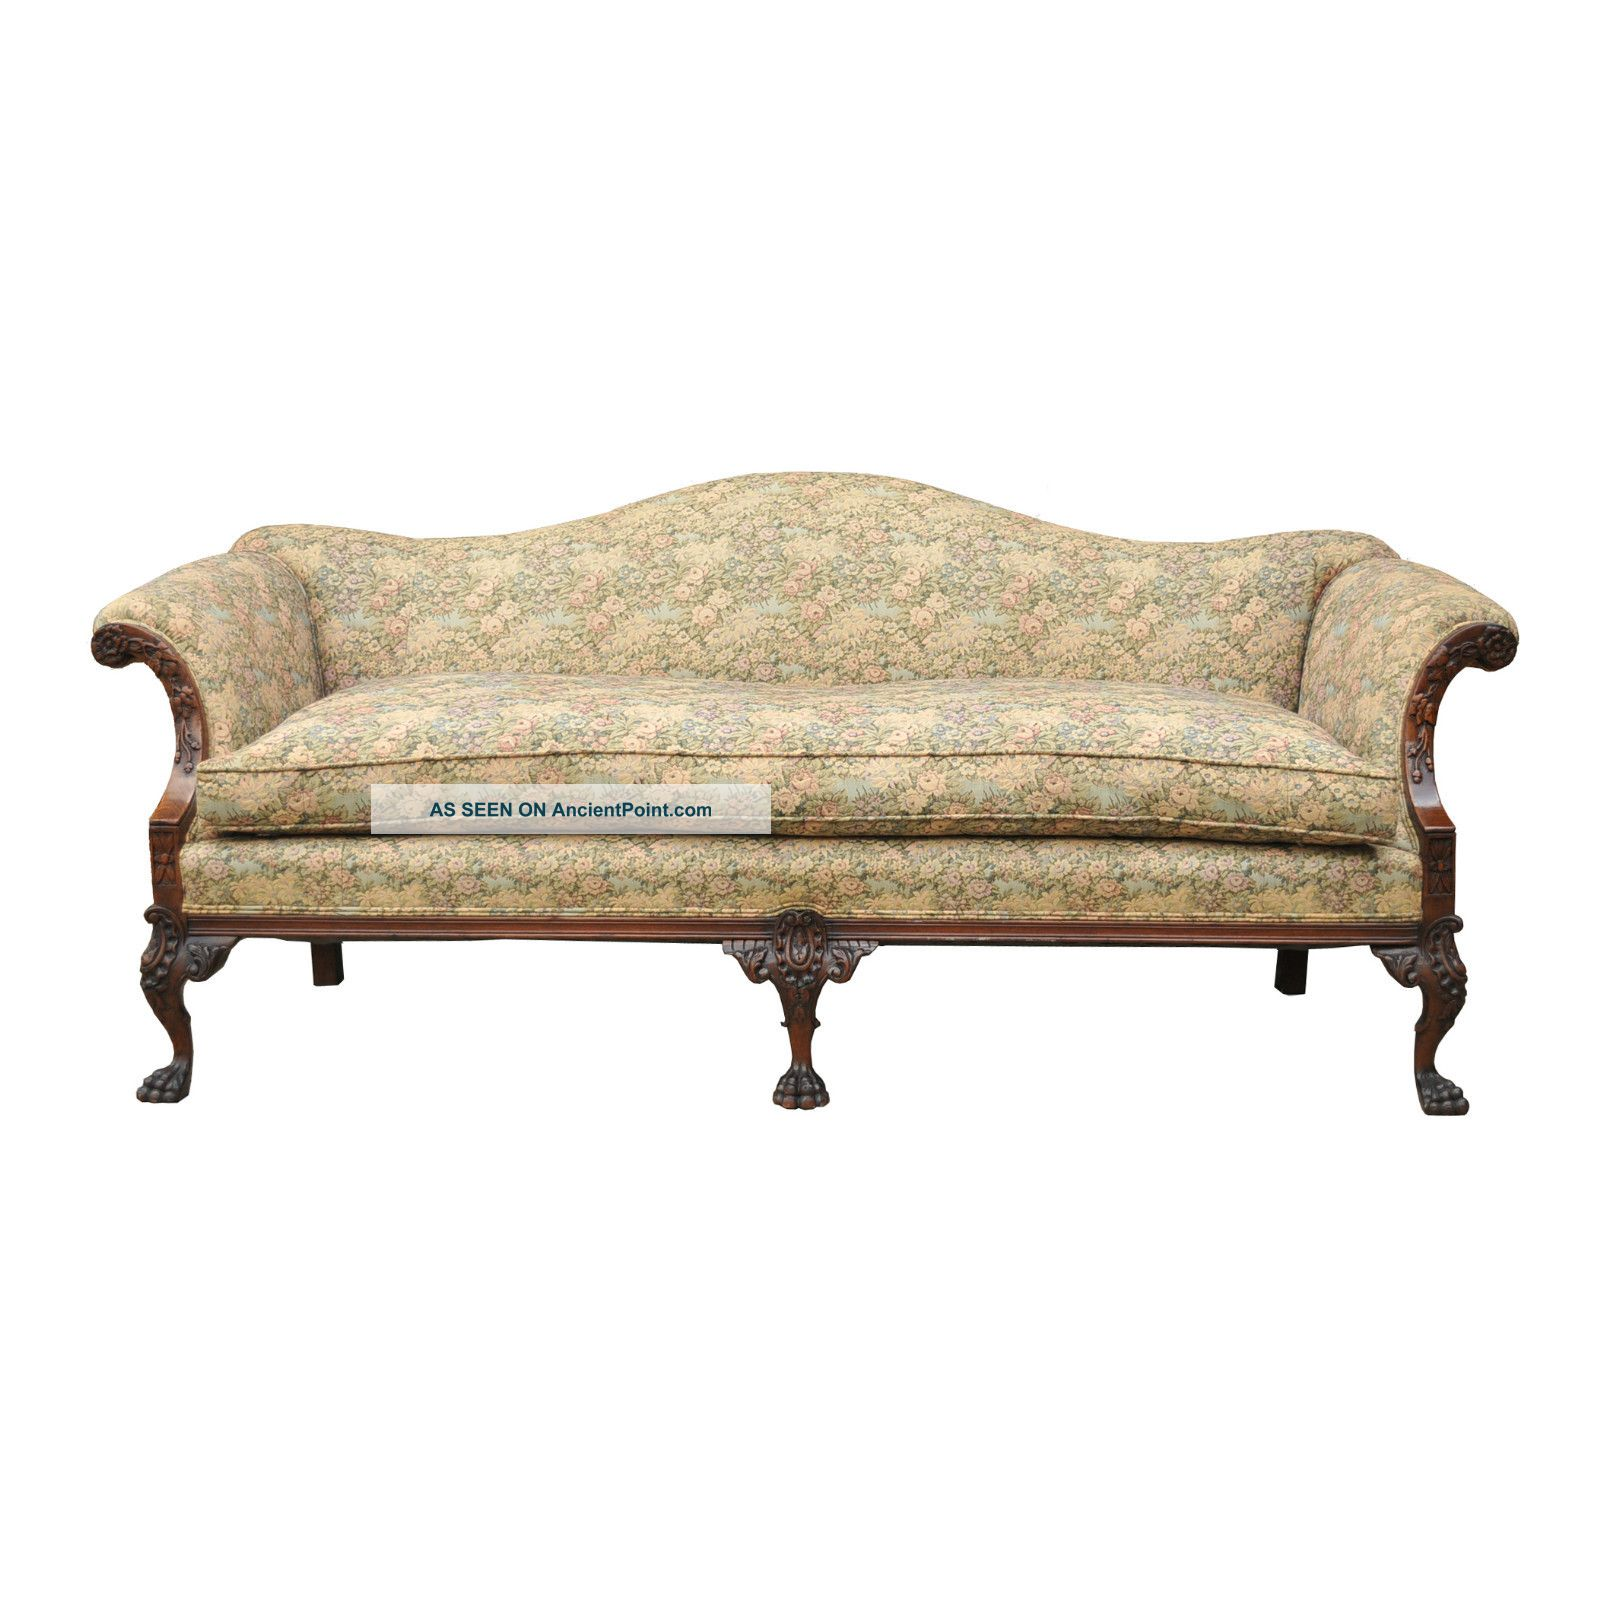 vintage camel back sofa 60s style antique chippendale home the honoroak